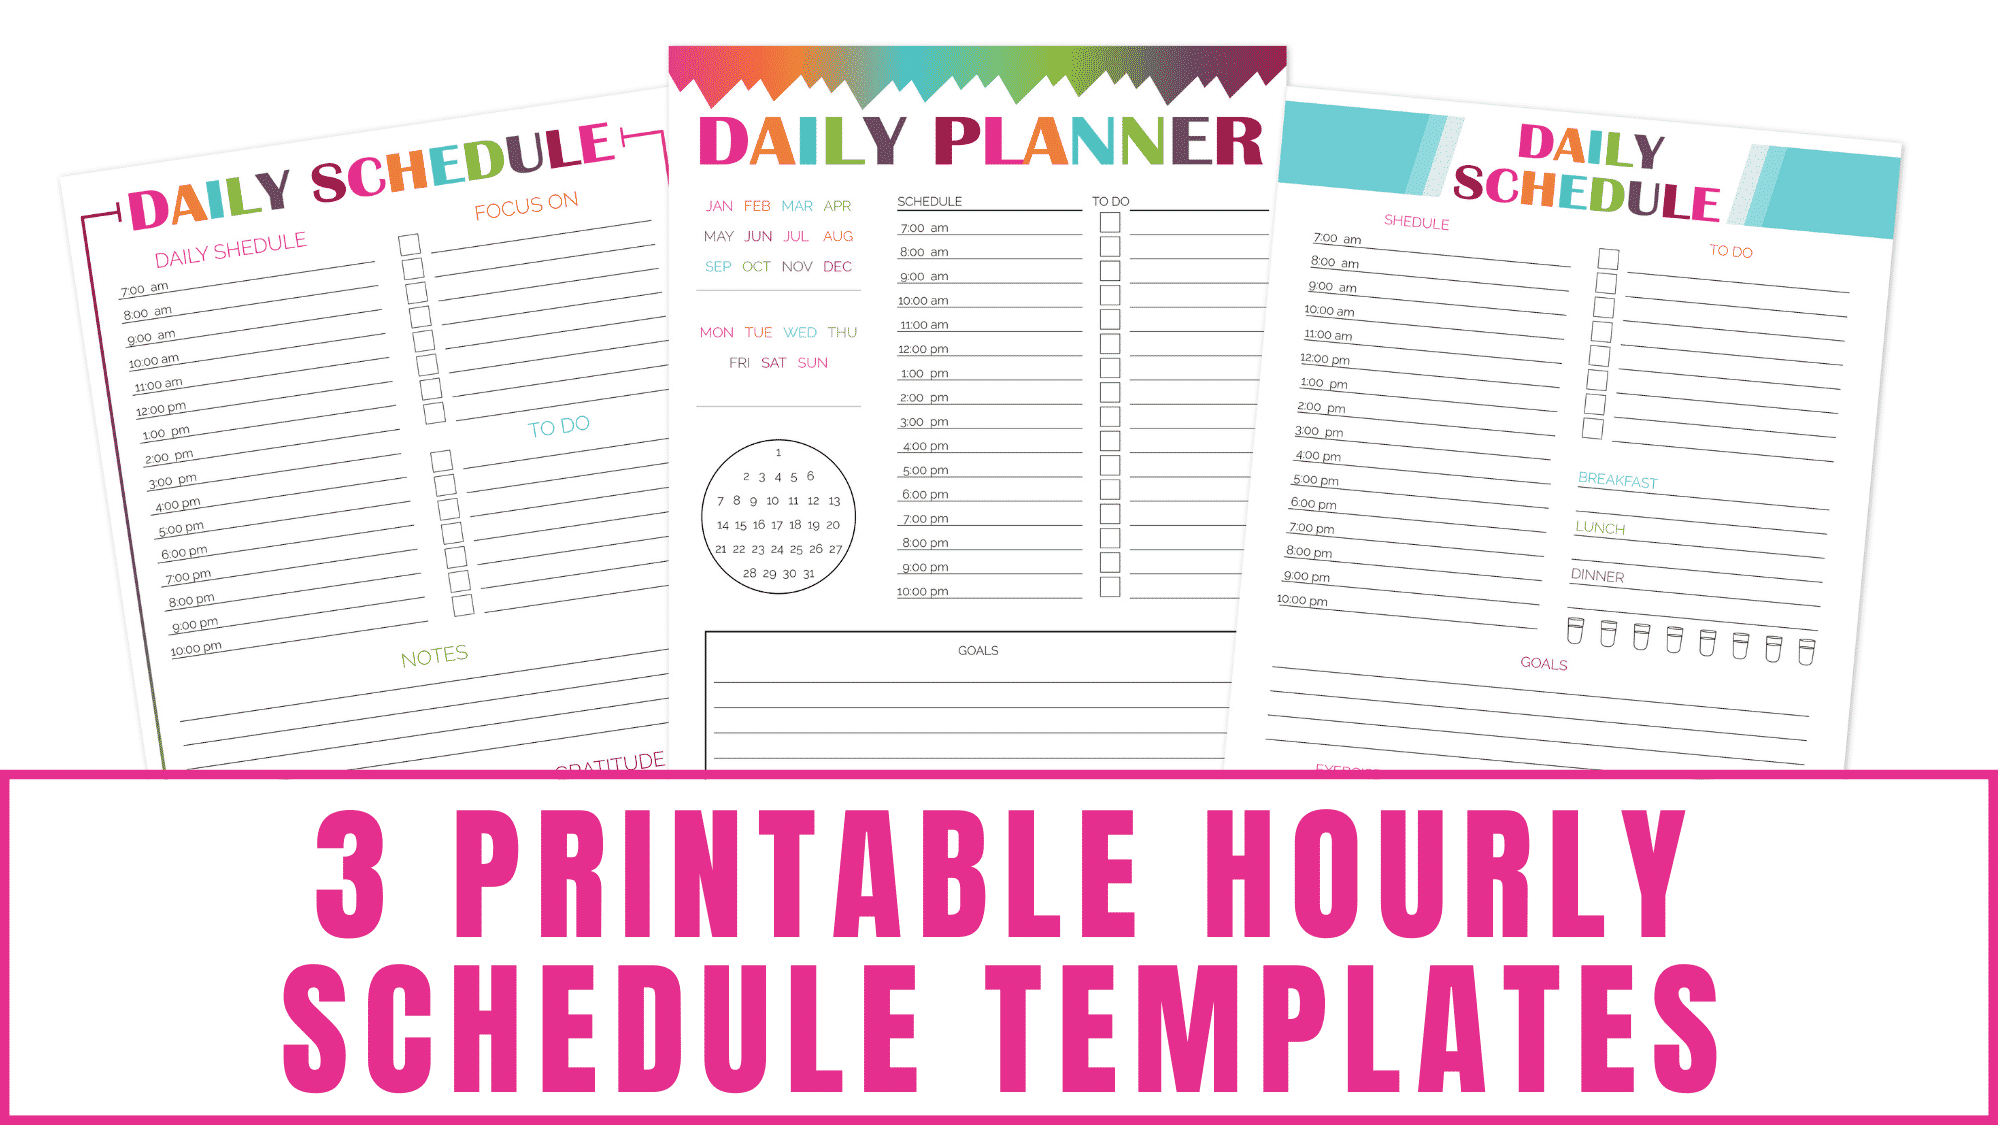 Are the kids heading back to school and you need to get your day organized? Use one of these printable hourly schedule templates to record your daily schedule along with your to do list, items to focus on, your daily water intake, goals, and more!